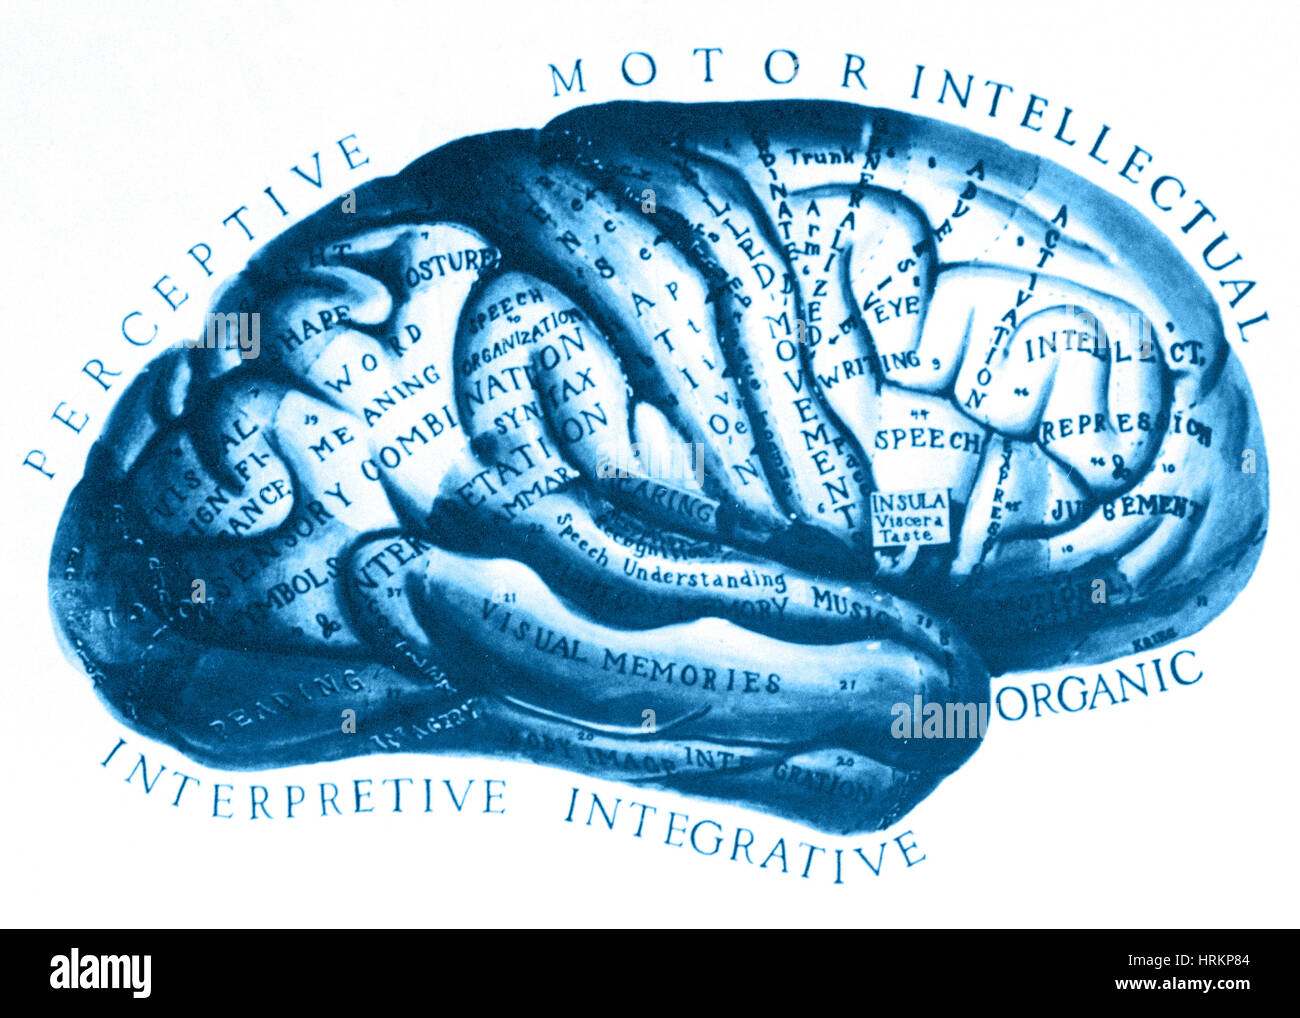 Historical Drawing of Brain - Stock Image